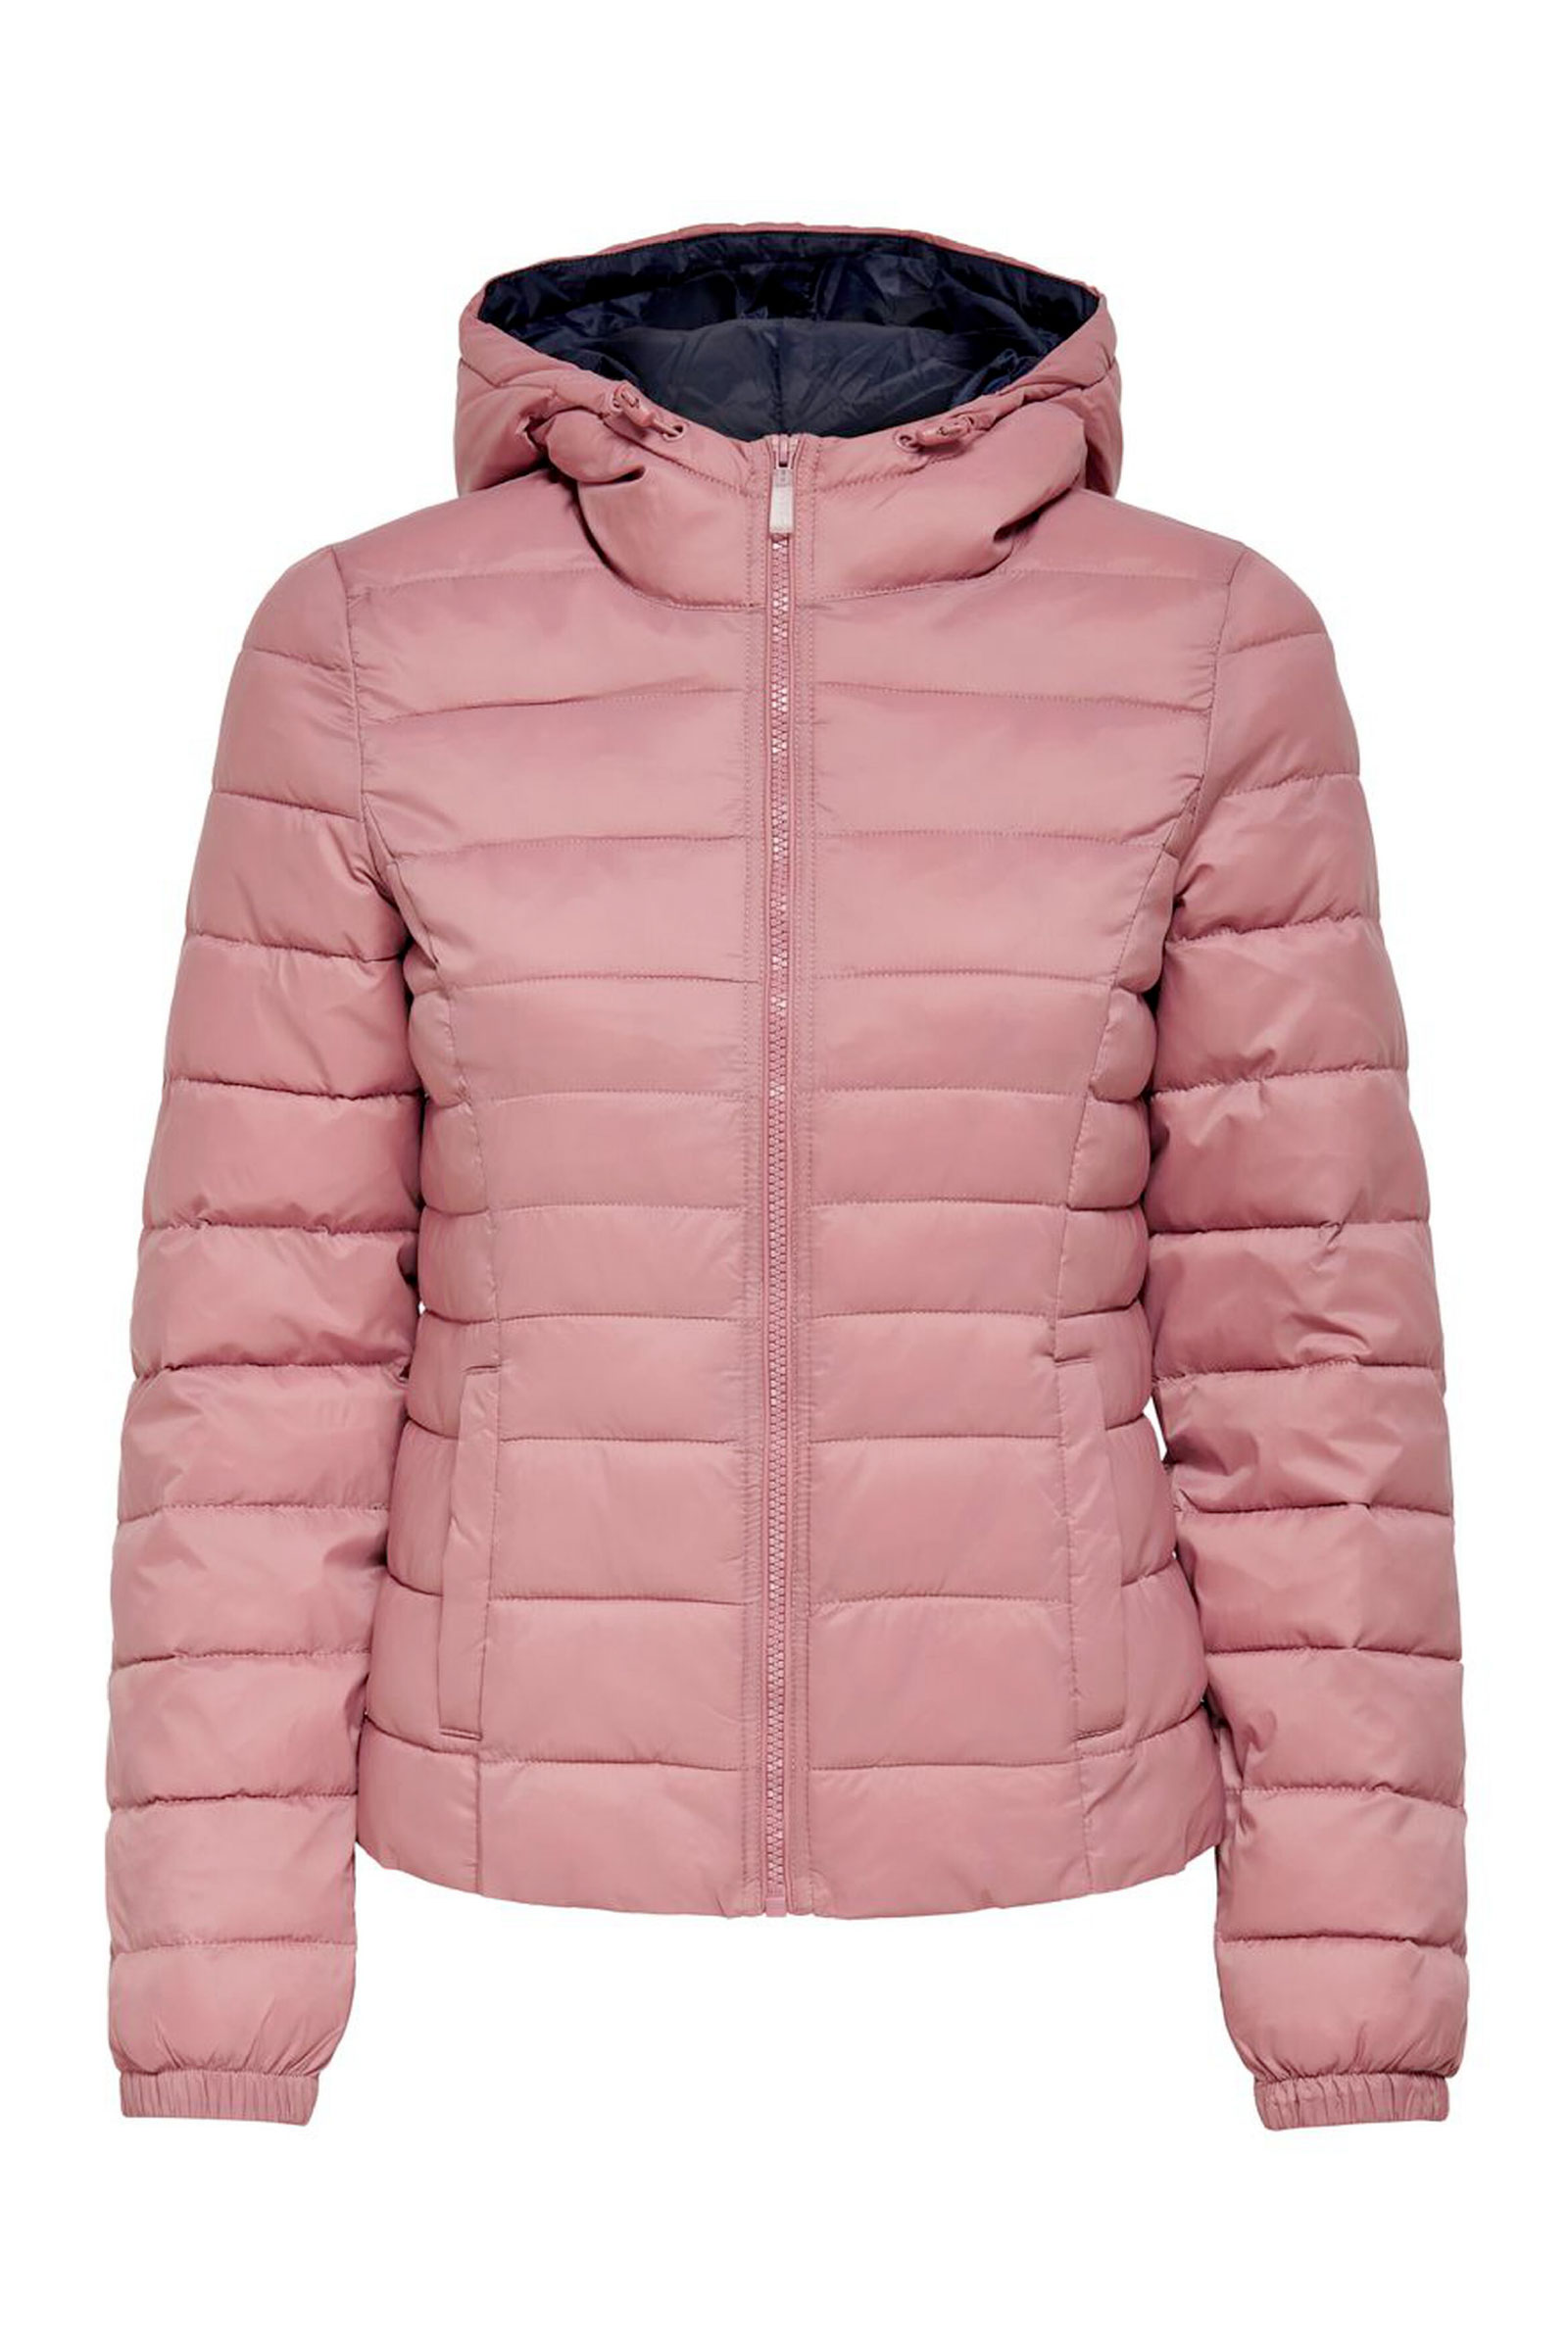 ONLY | Jacket | 15205758WITHERED ROSE